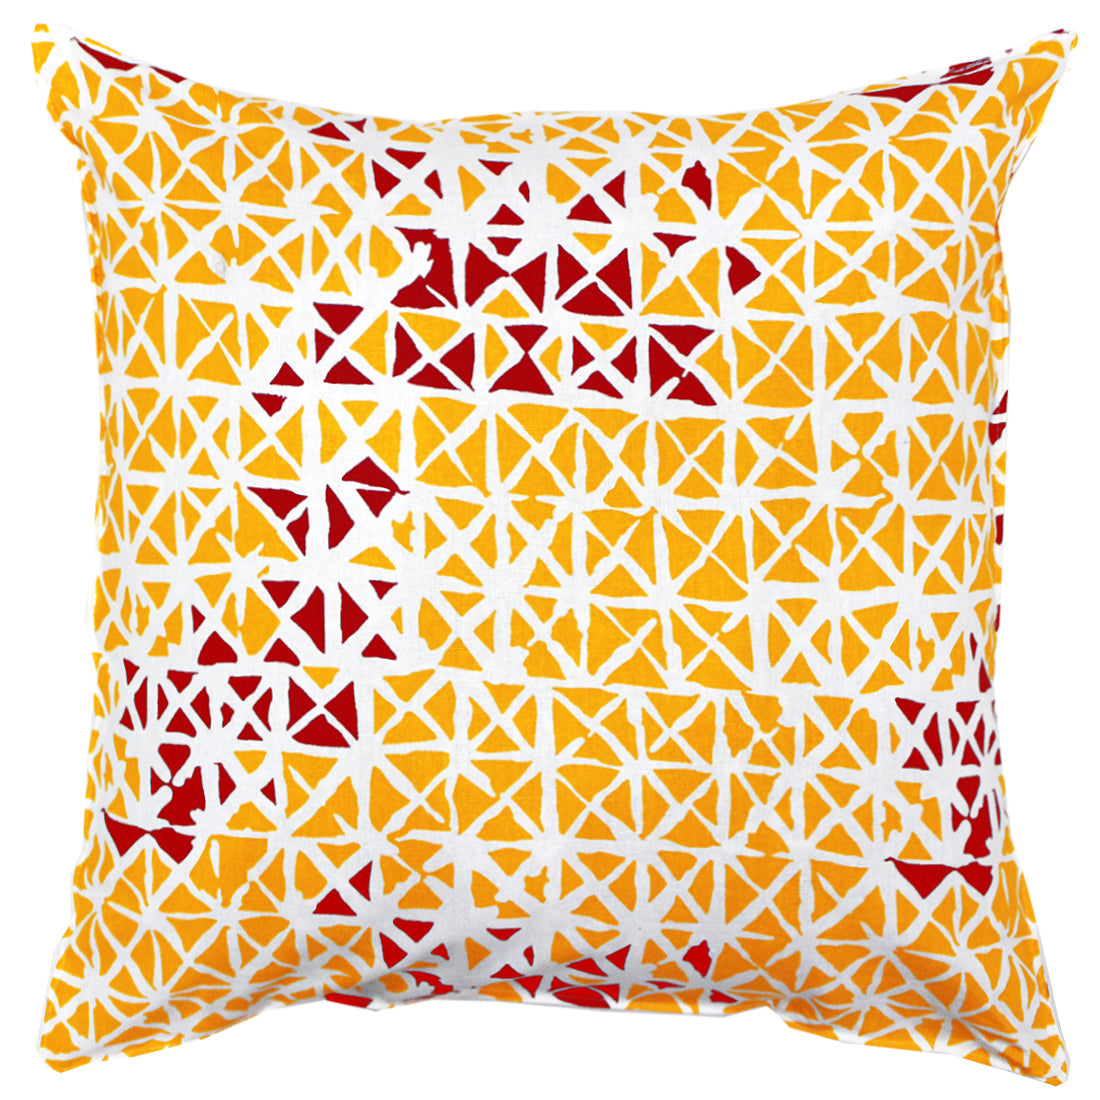 AURAVE Printed Geometrical Cotton Cushion Cover - Maroon & Mustard